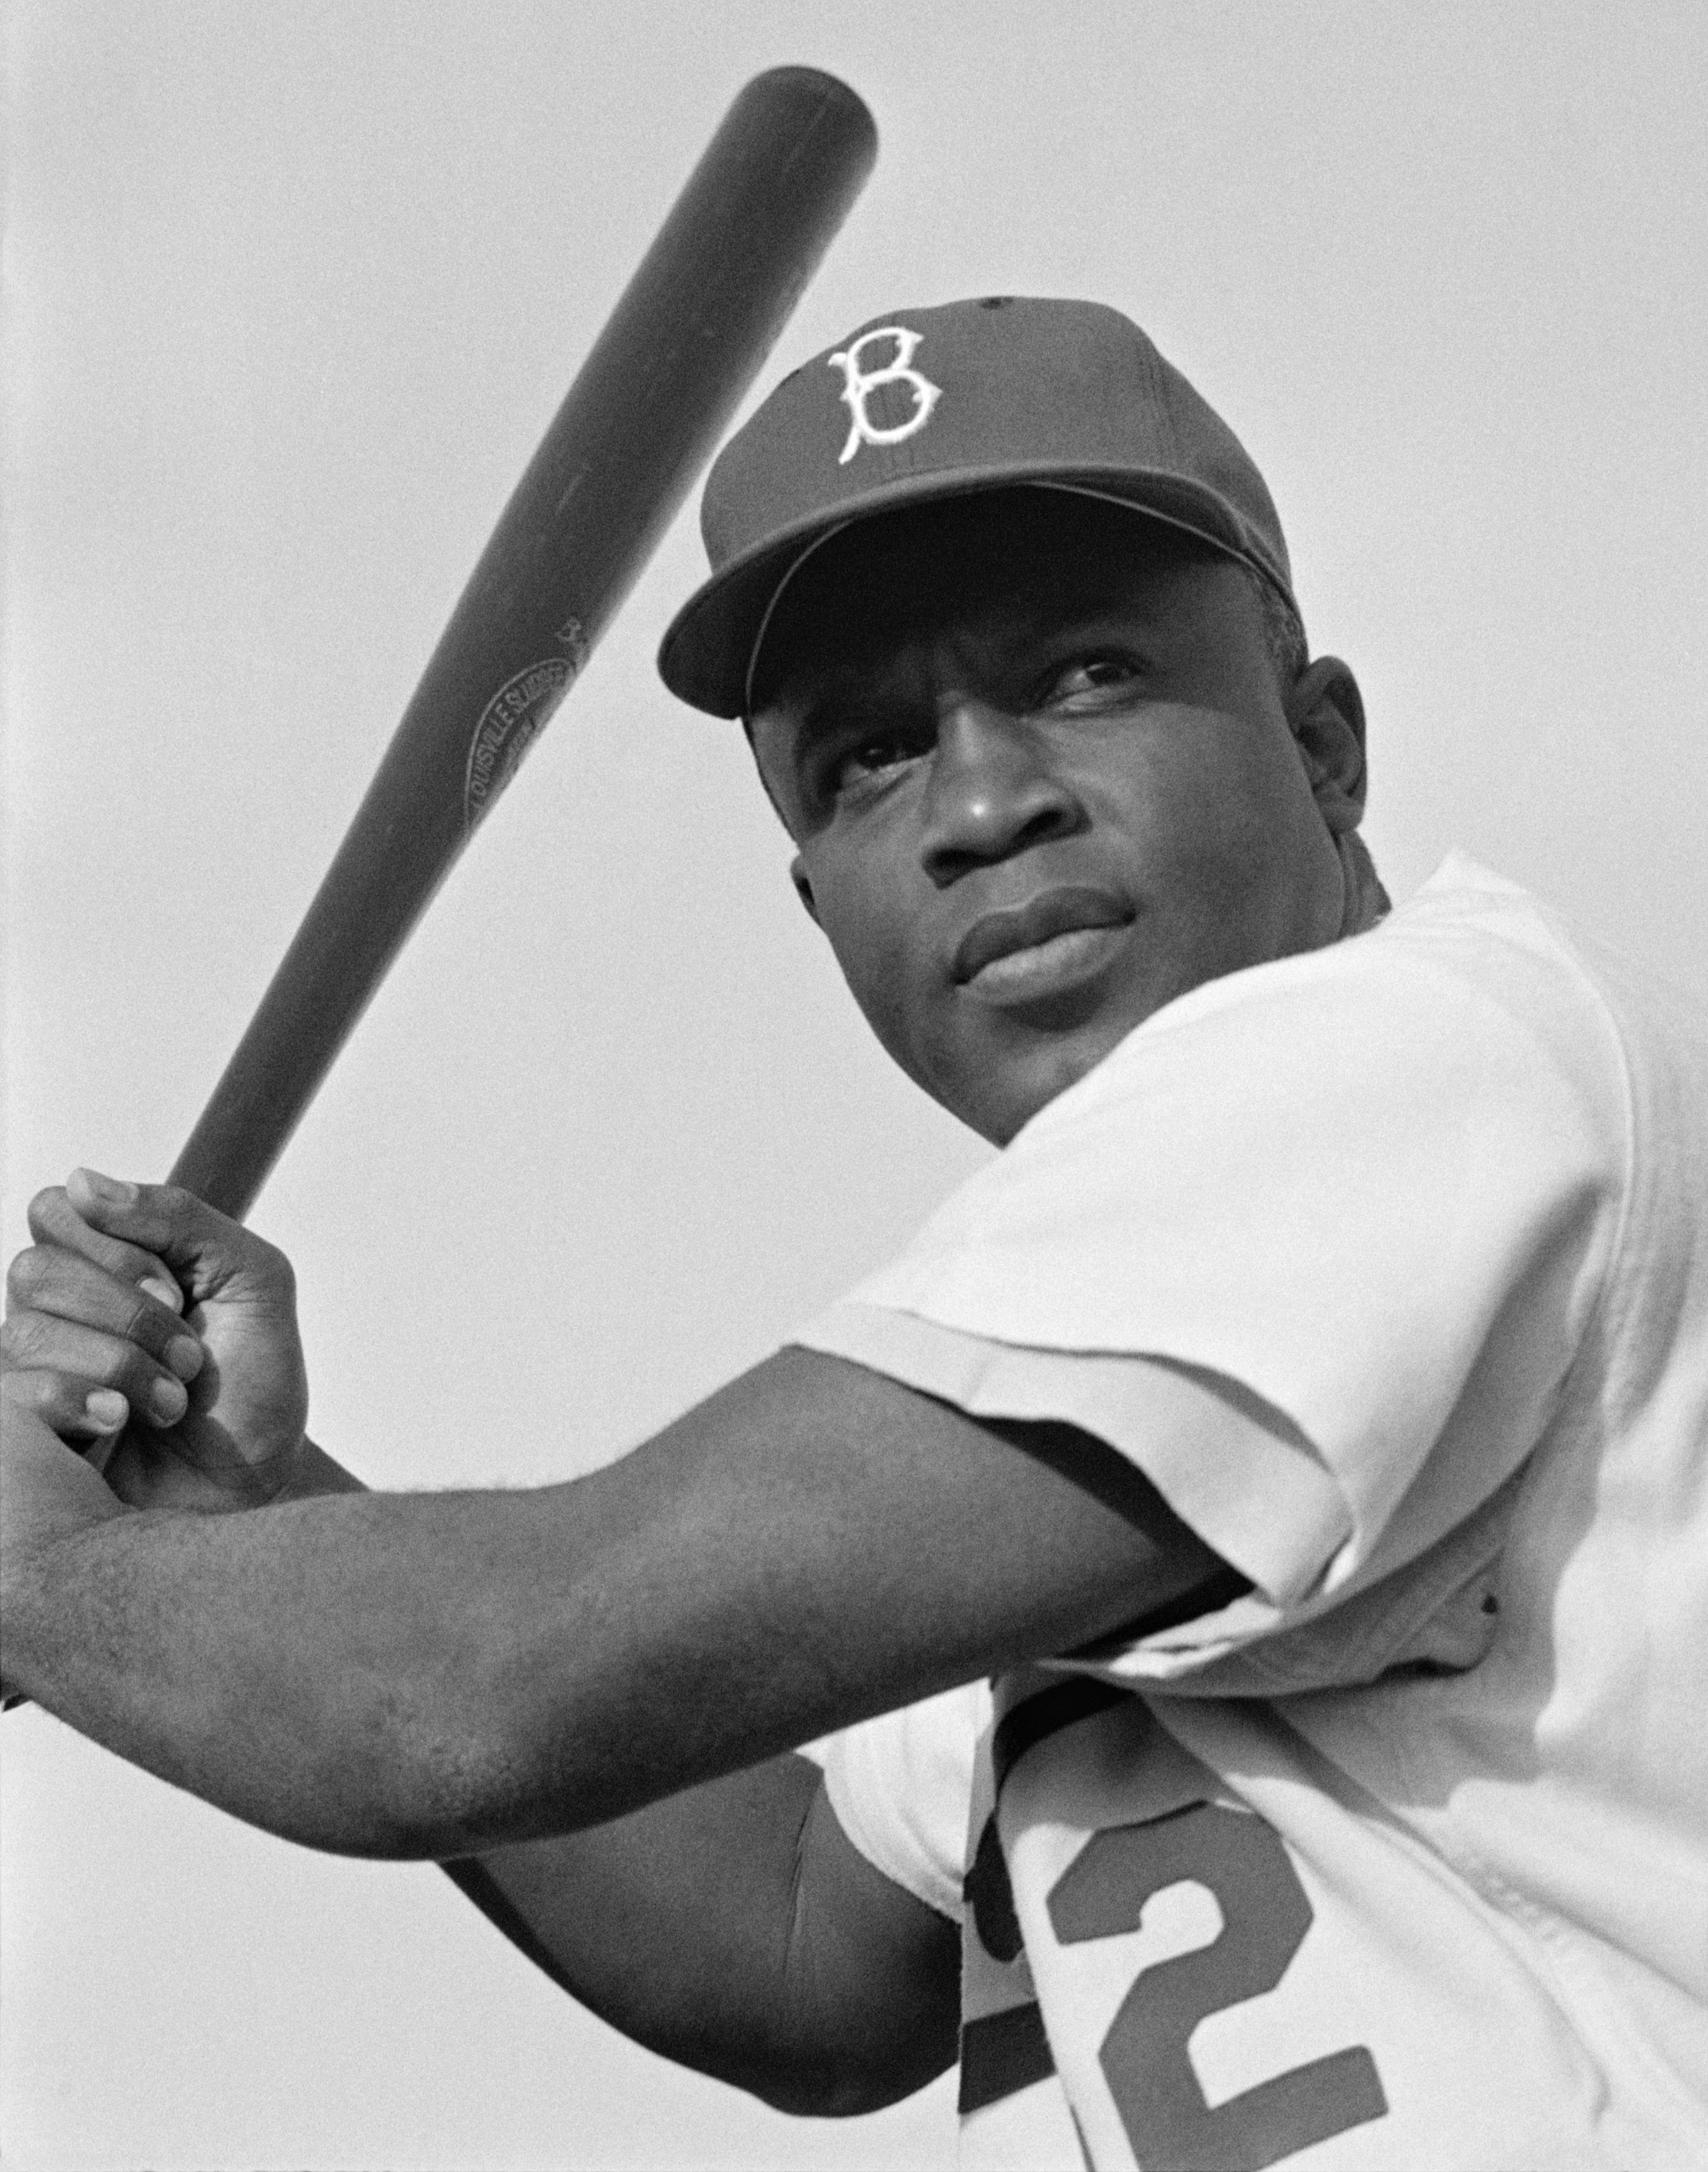 Jackie Robinson with the Brooklyn Dodgers in 1954.